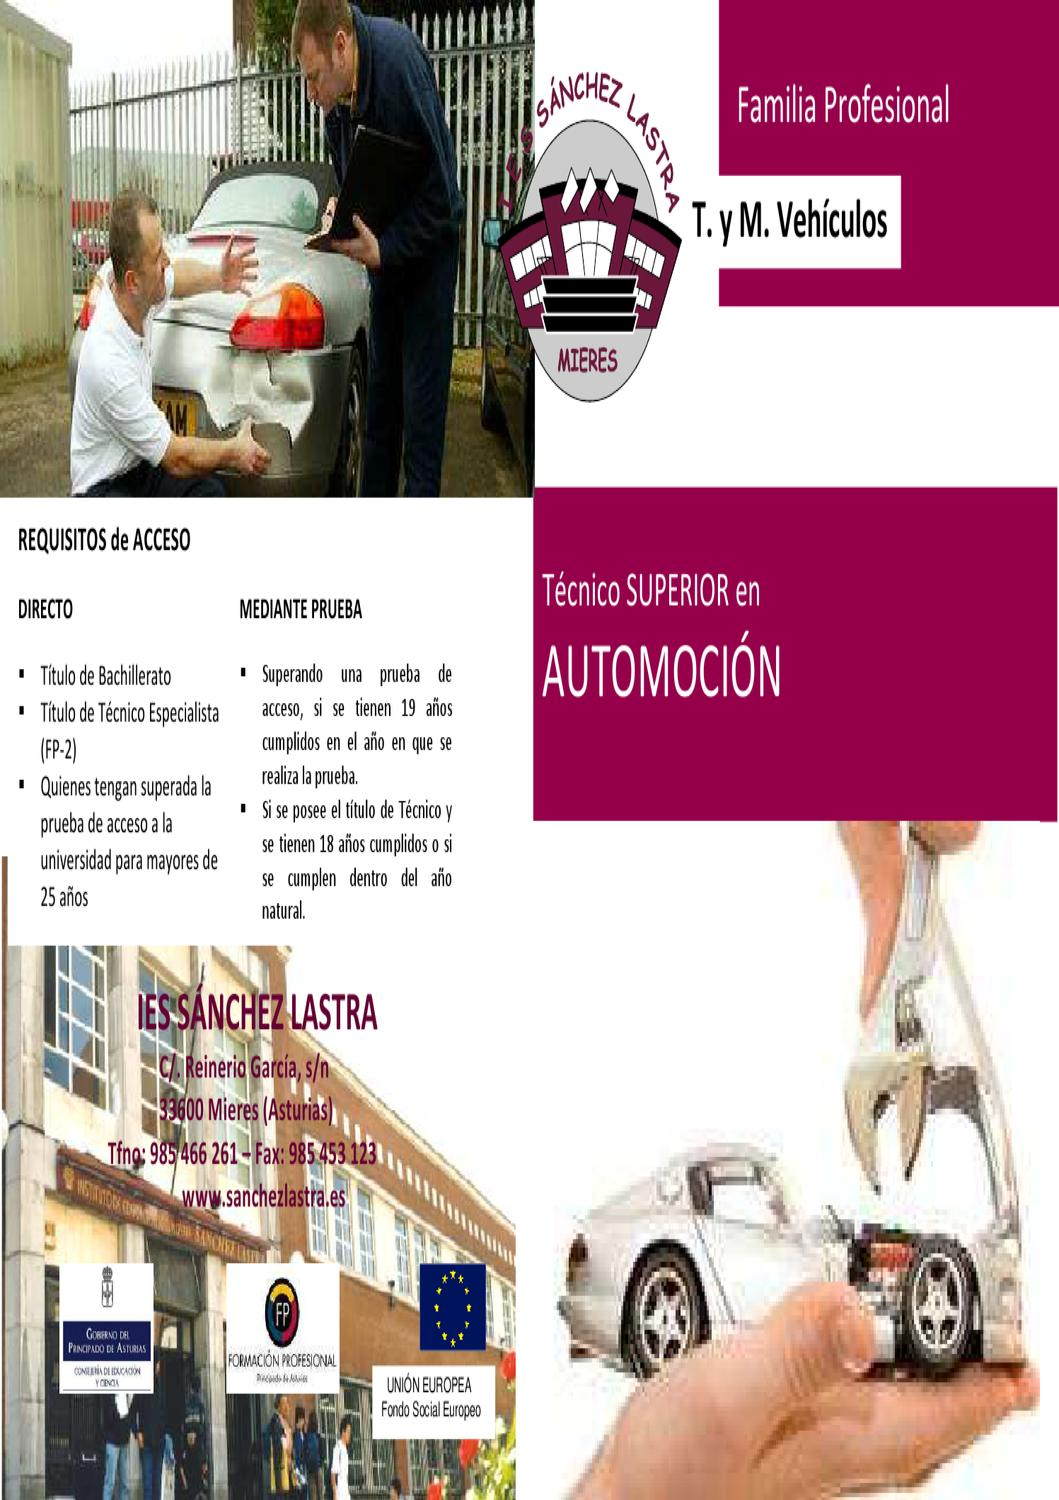 Automoci n by ies s nchez lastra issuu - Sanchez lastra ...